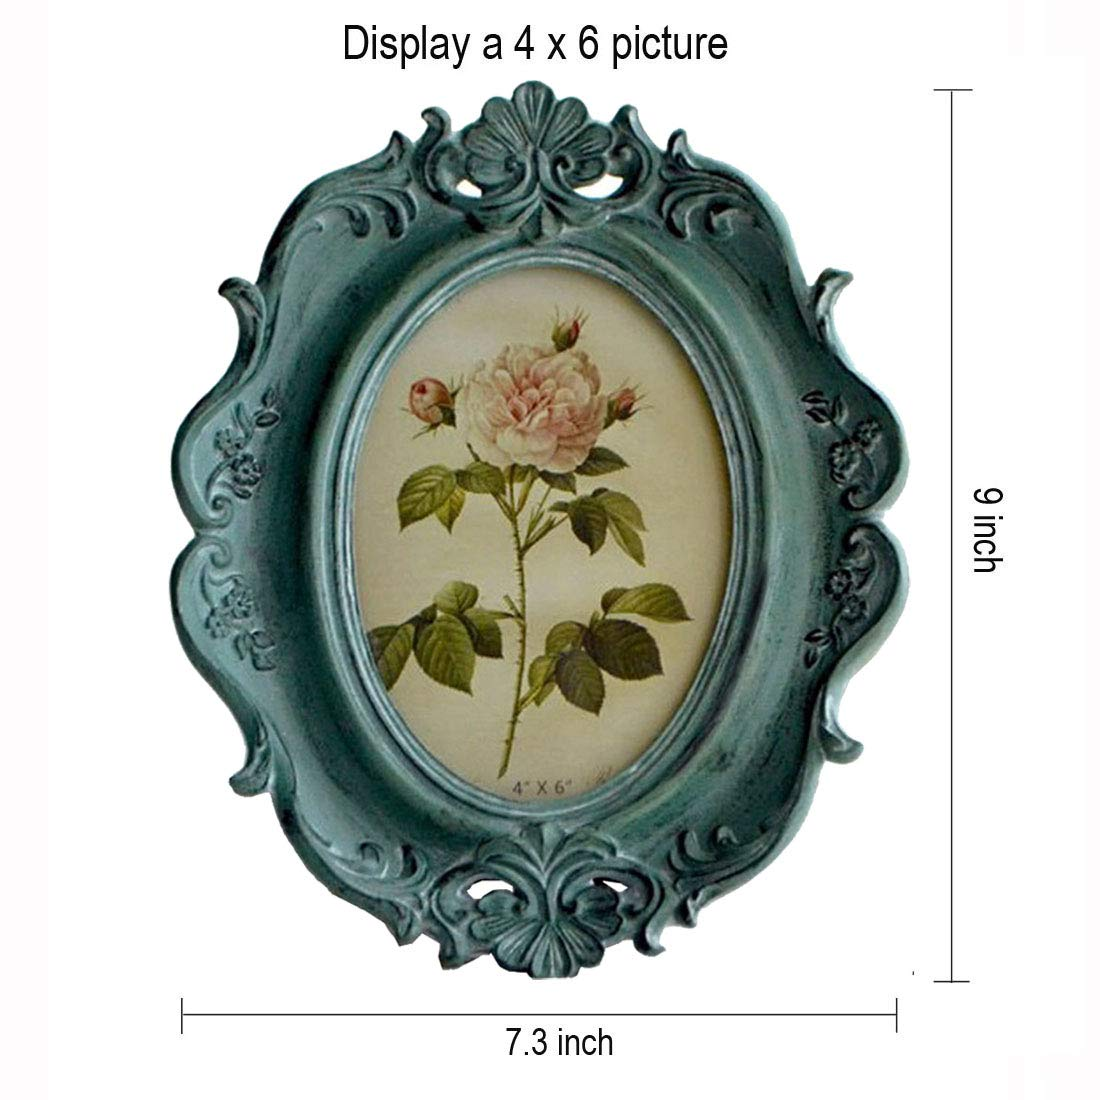 Silver City Source CISOO Vintage Oval Picture Frame 4x6 Antique Photo Frame Table Top Display and Wall Hanging Home Decor